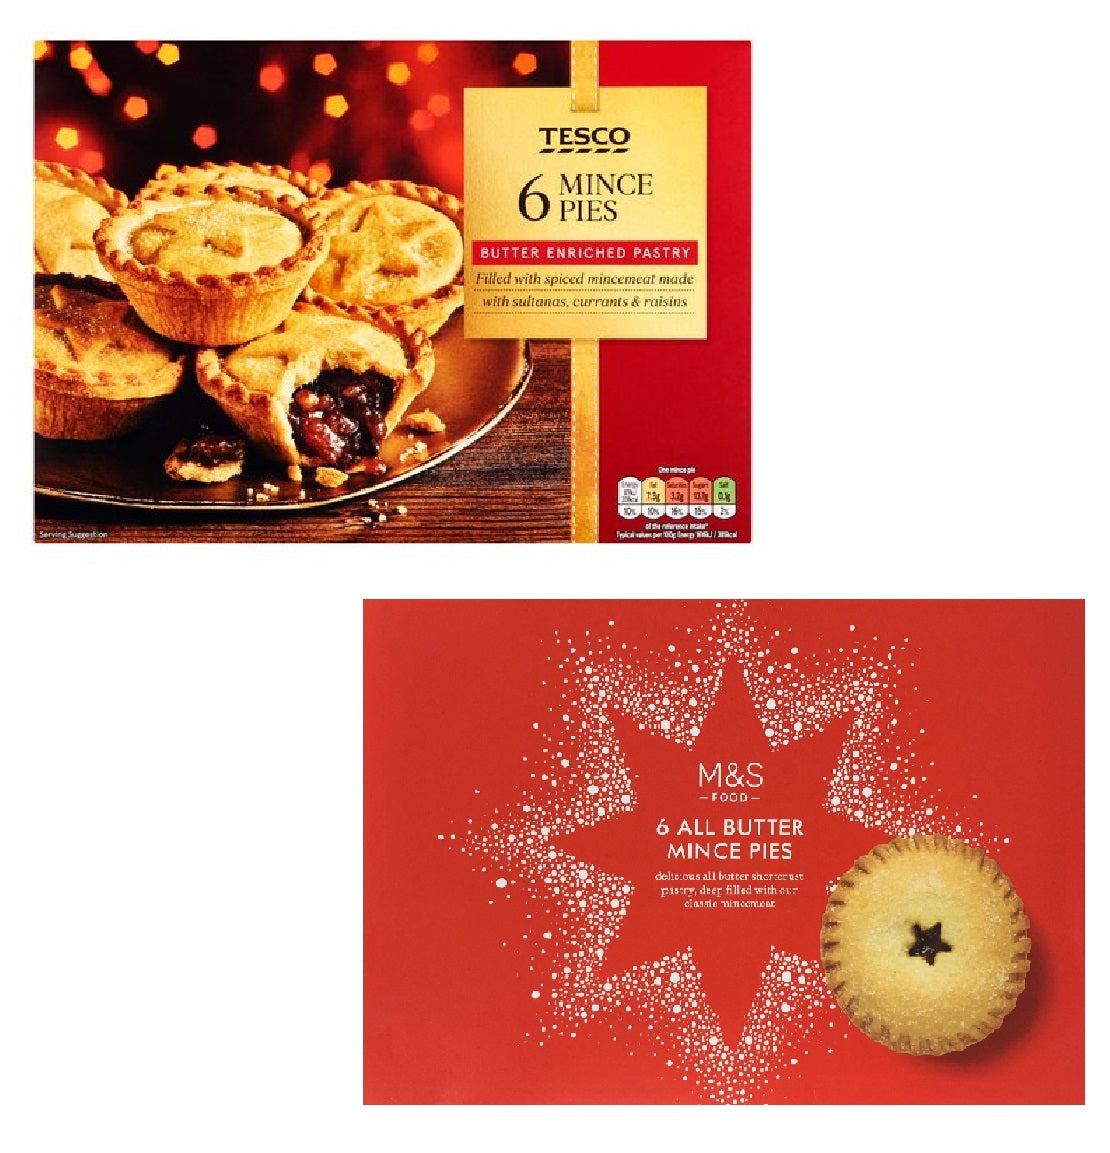 6 Mince Pies Pack Traditional Christmas Food By Tesco Ms